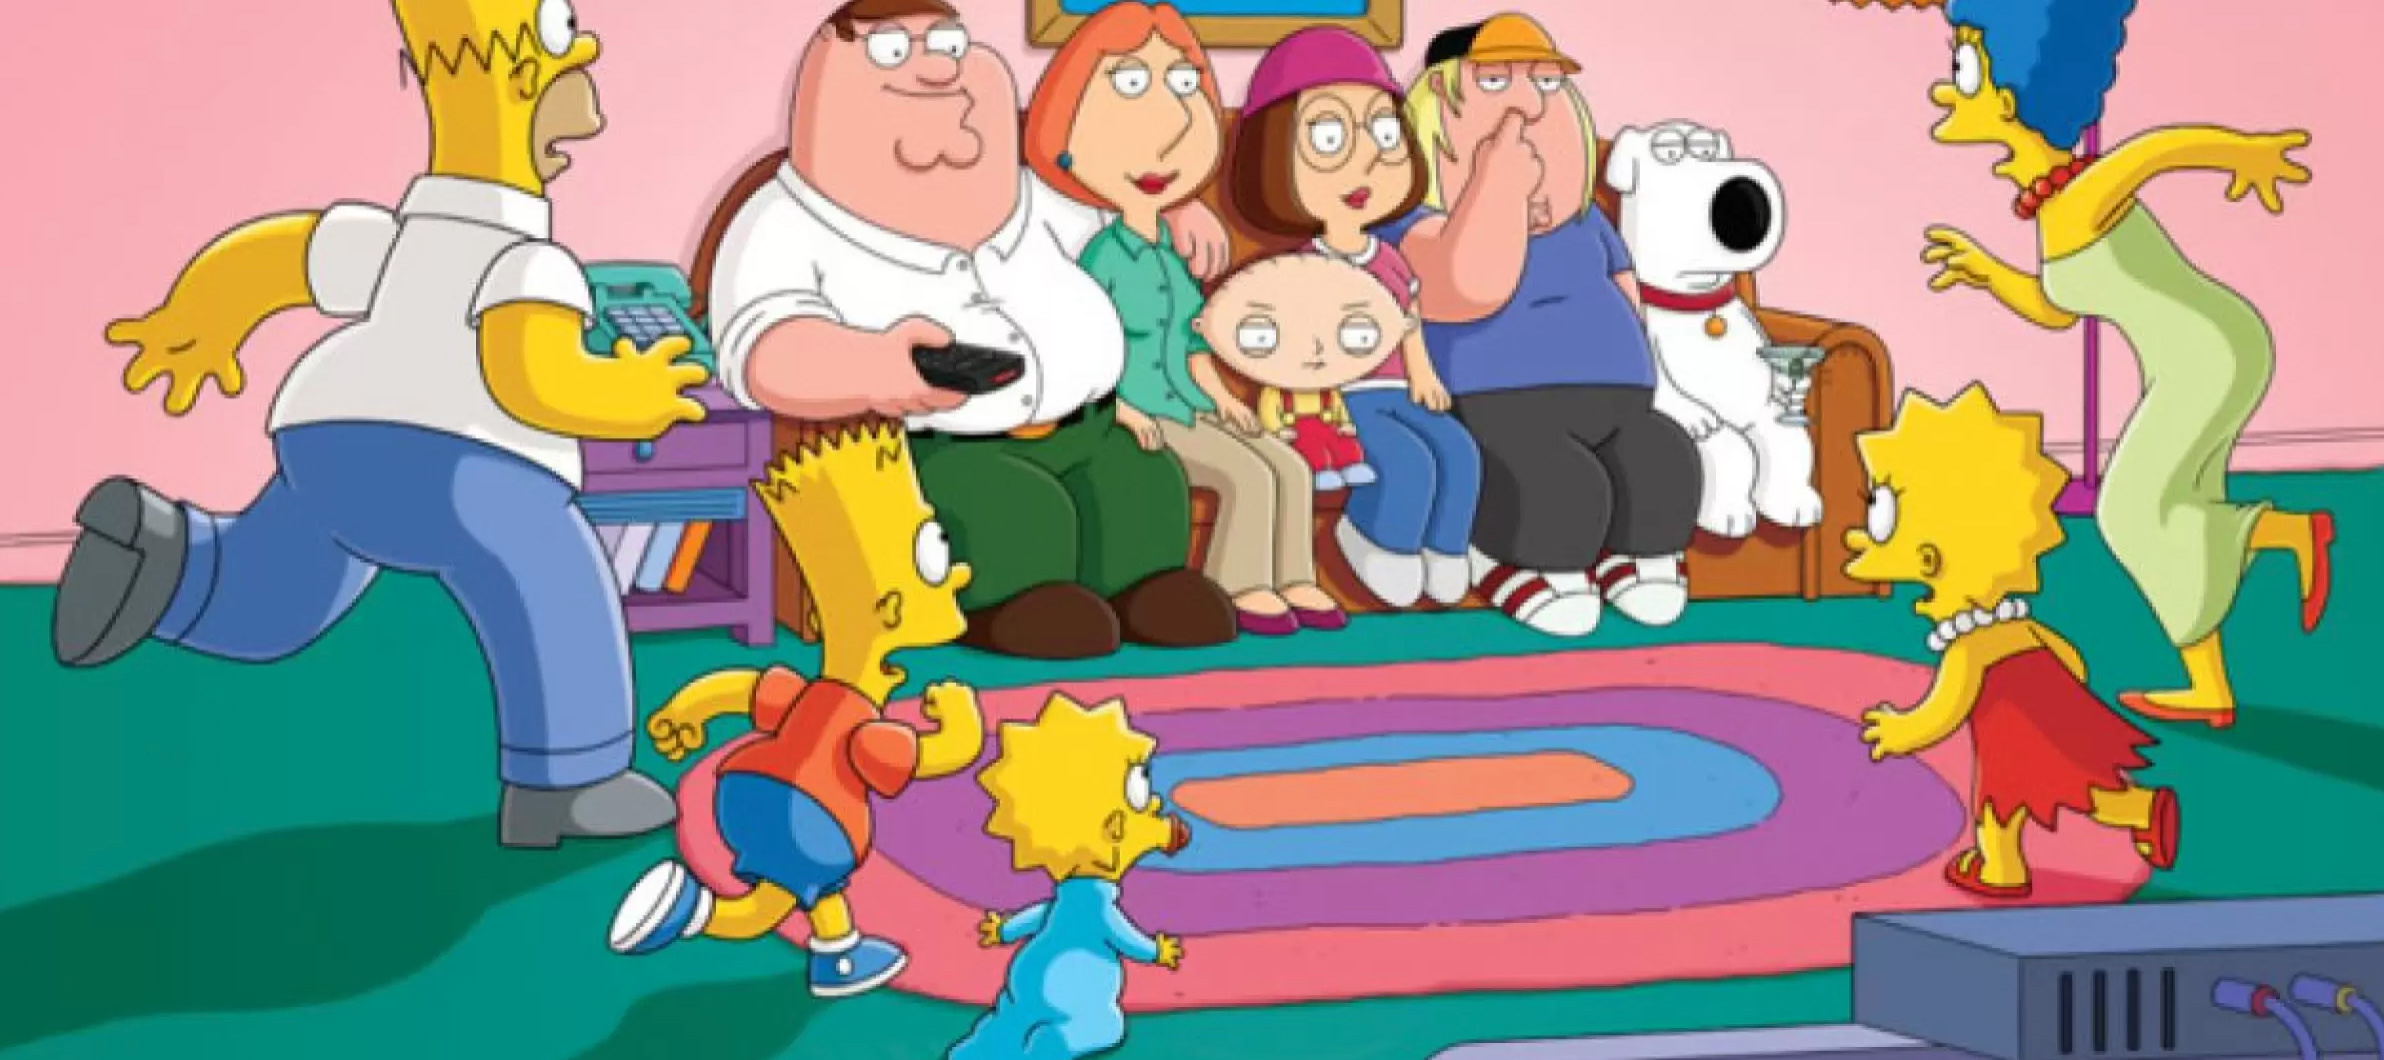 The Simpsons vs. The Family Guy